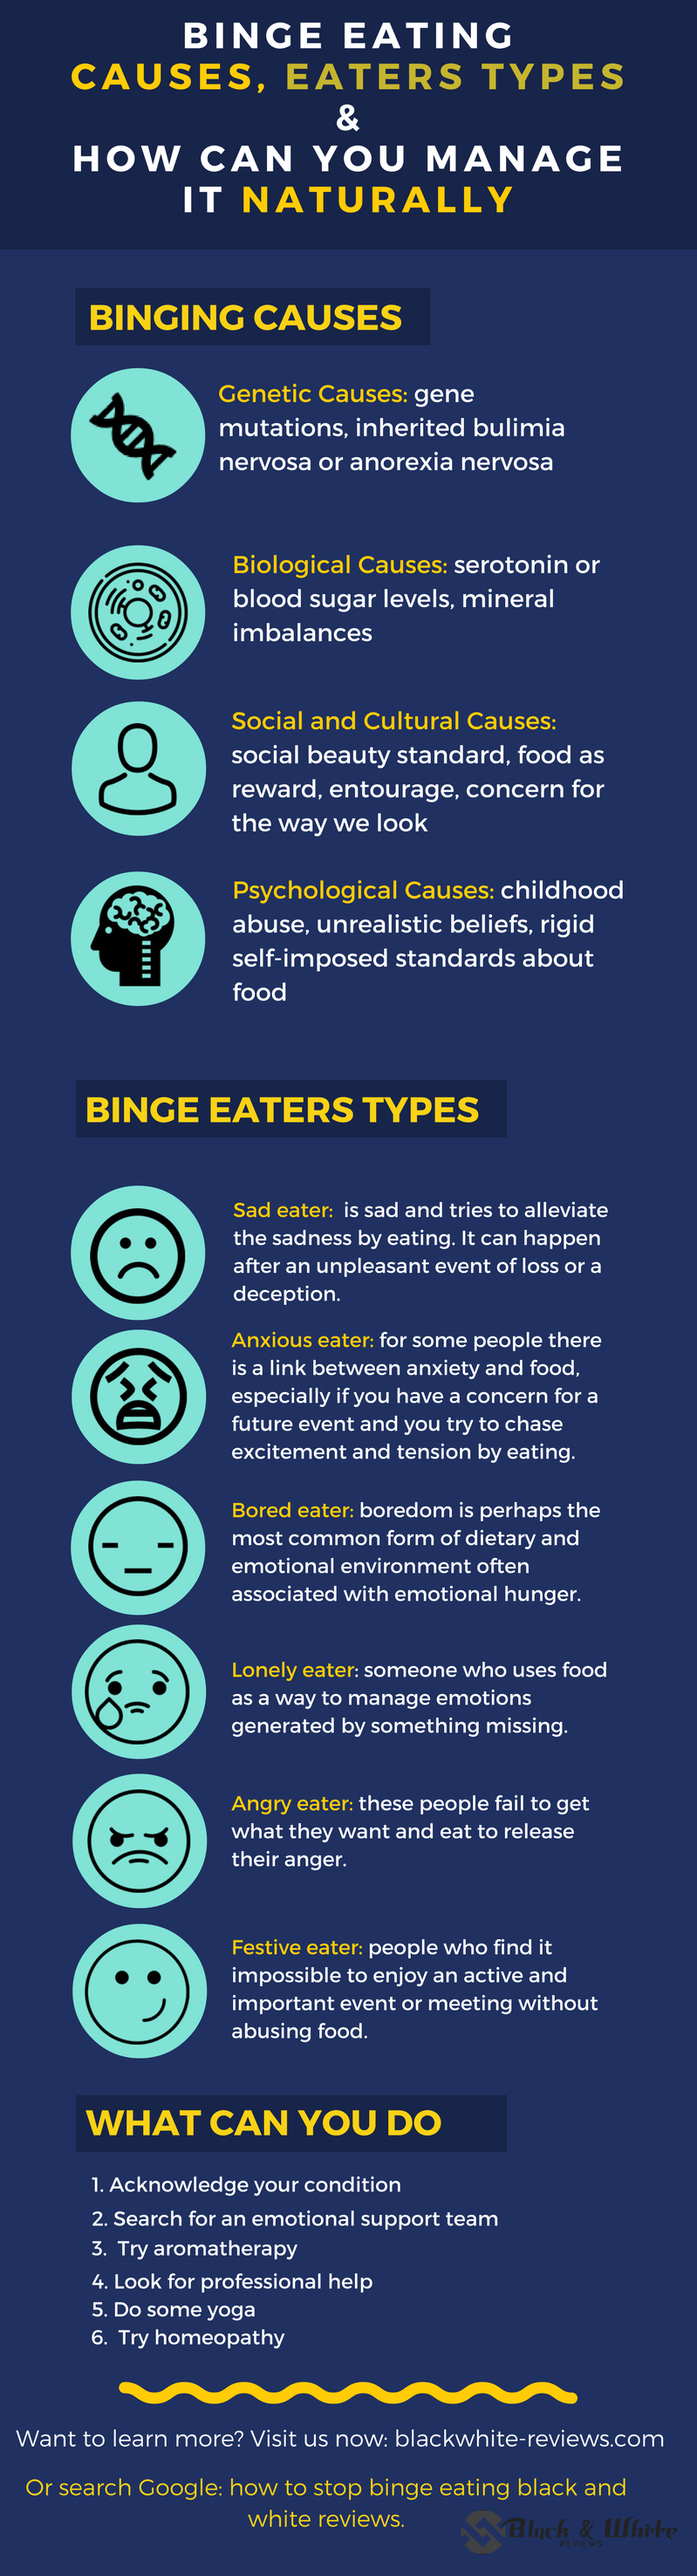 binge eating- causes, binge eaters types & how to stop it naturally